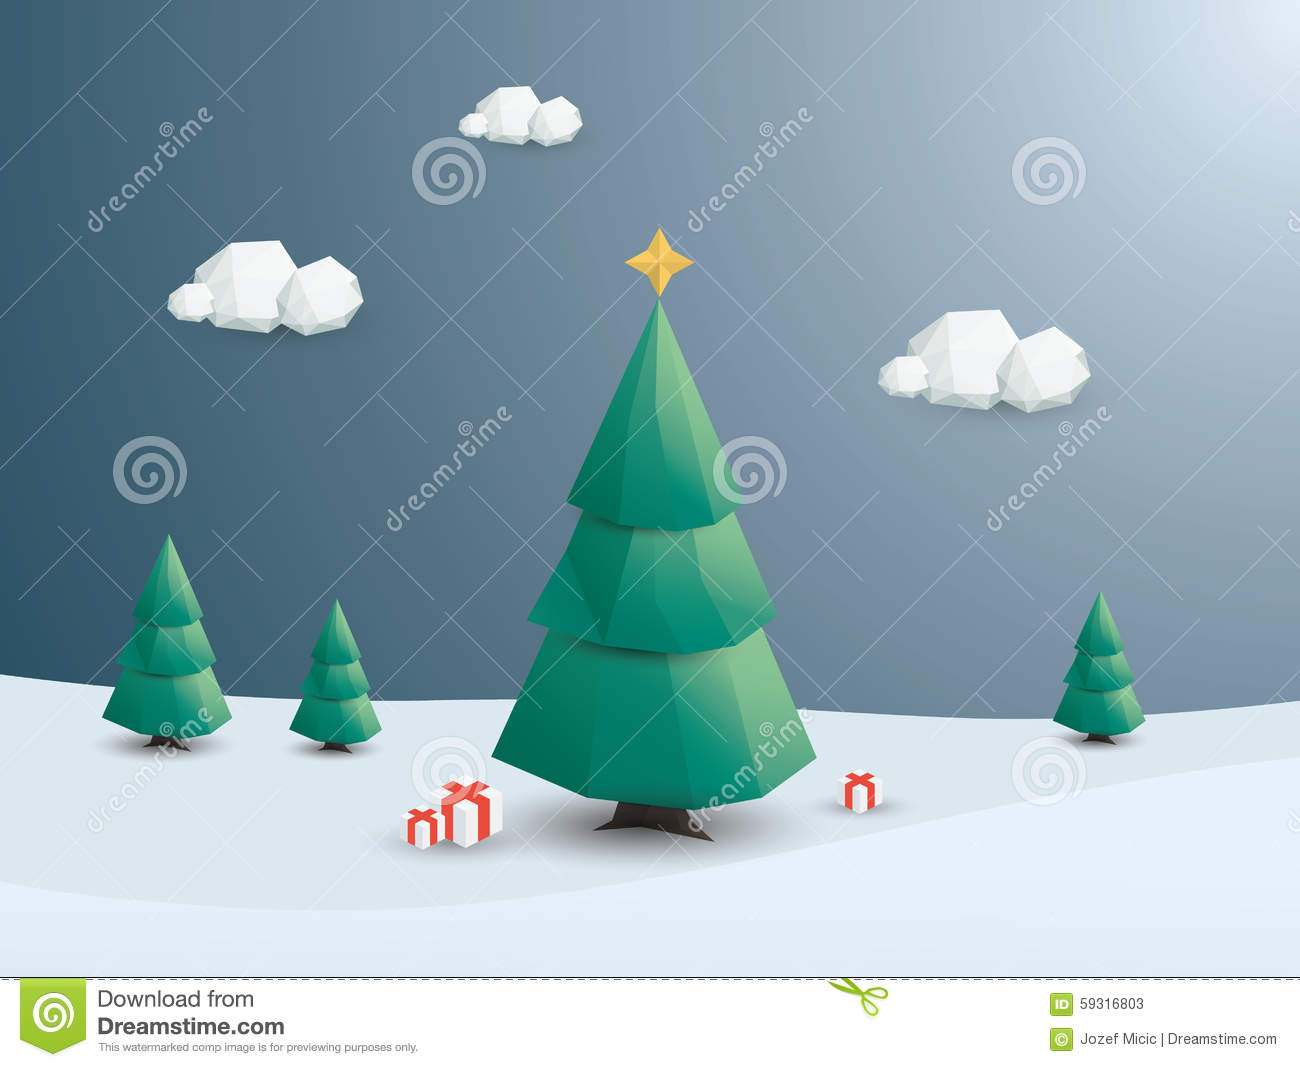 download low poly christmas tree holiday card template stock vector illustration of gifts - Polytree Christmas Tree